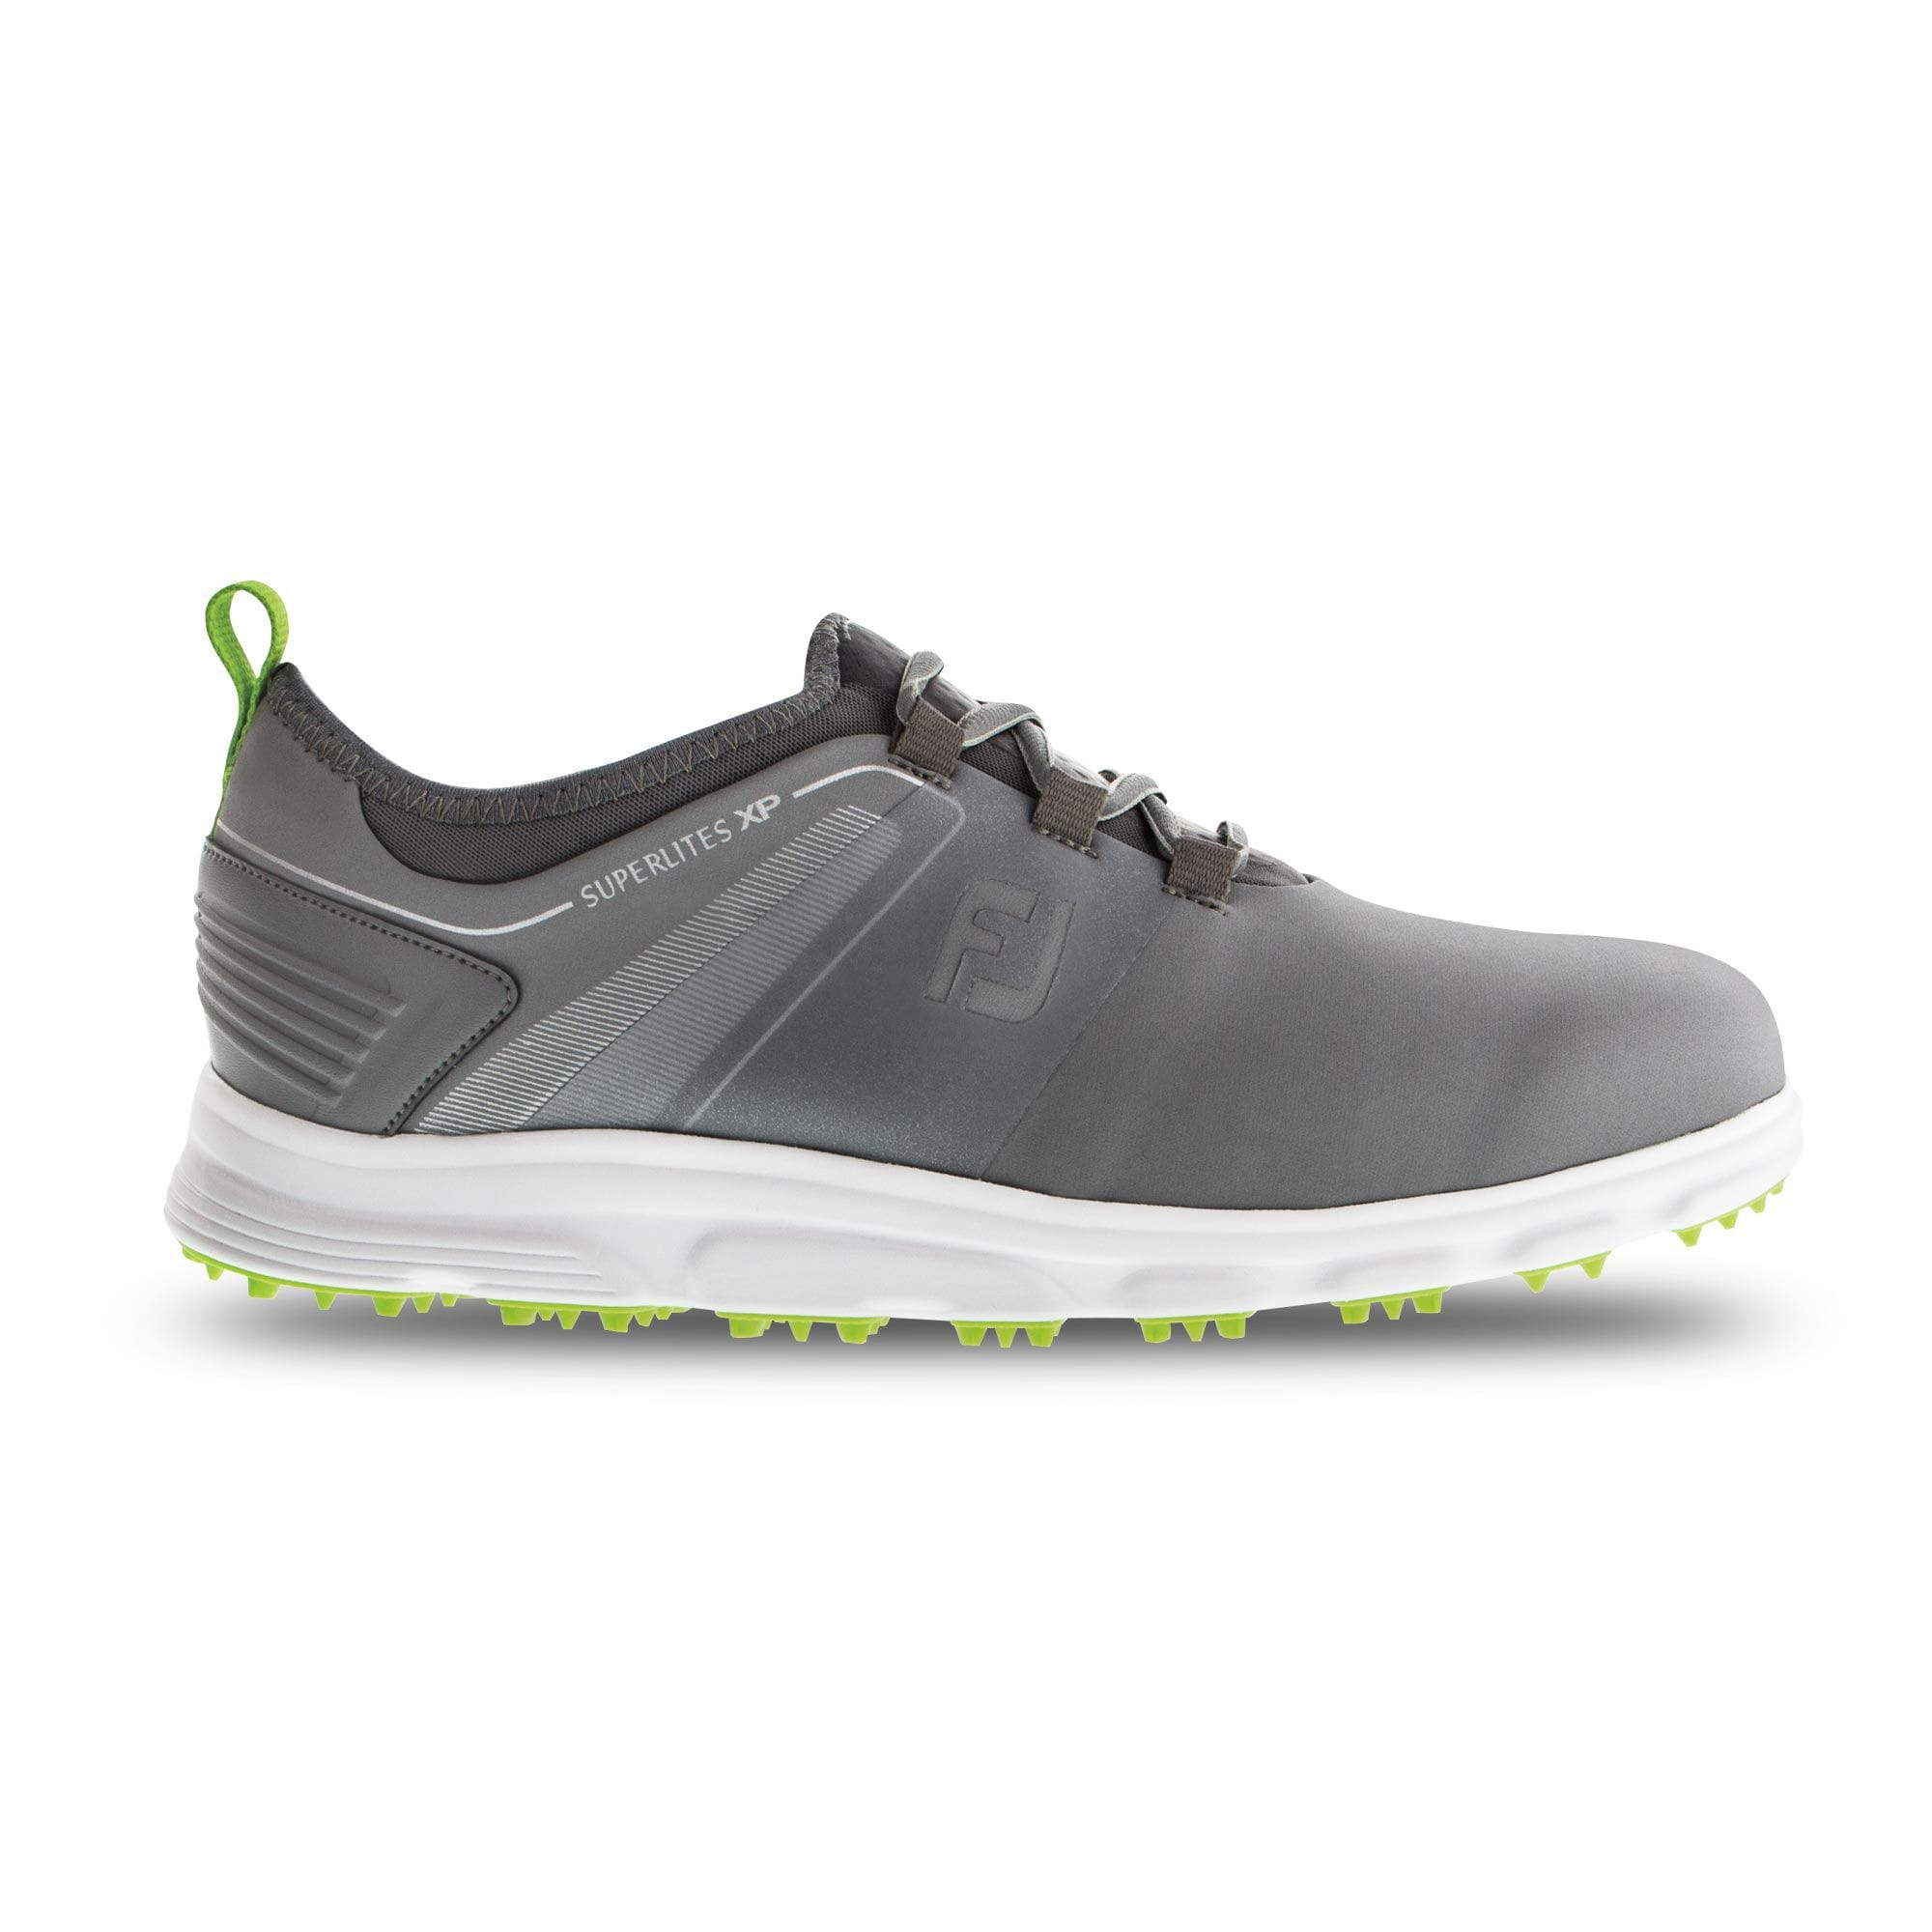 Athletic Works Men/'s Pick Color Lightweight Athletic Running Sneakers Shoes:7-13